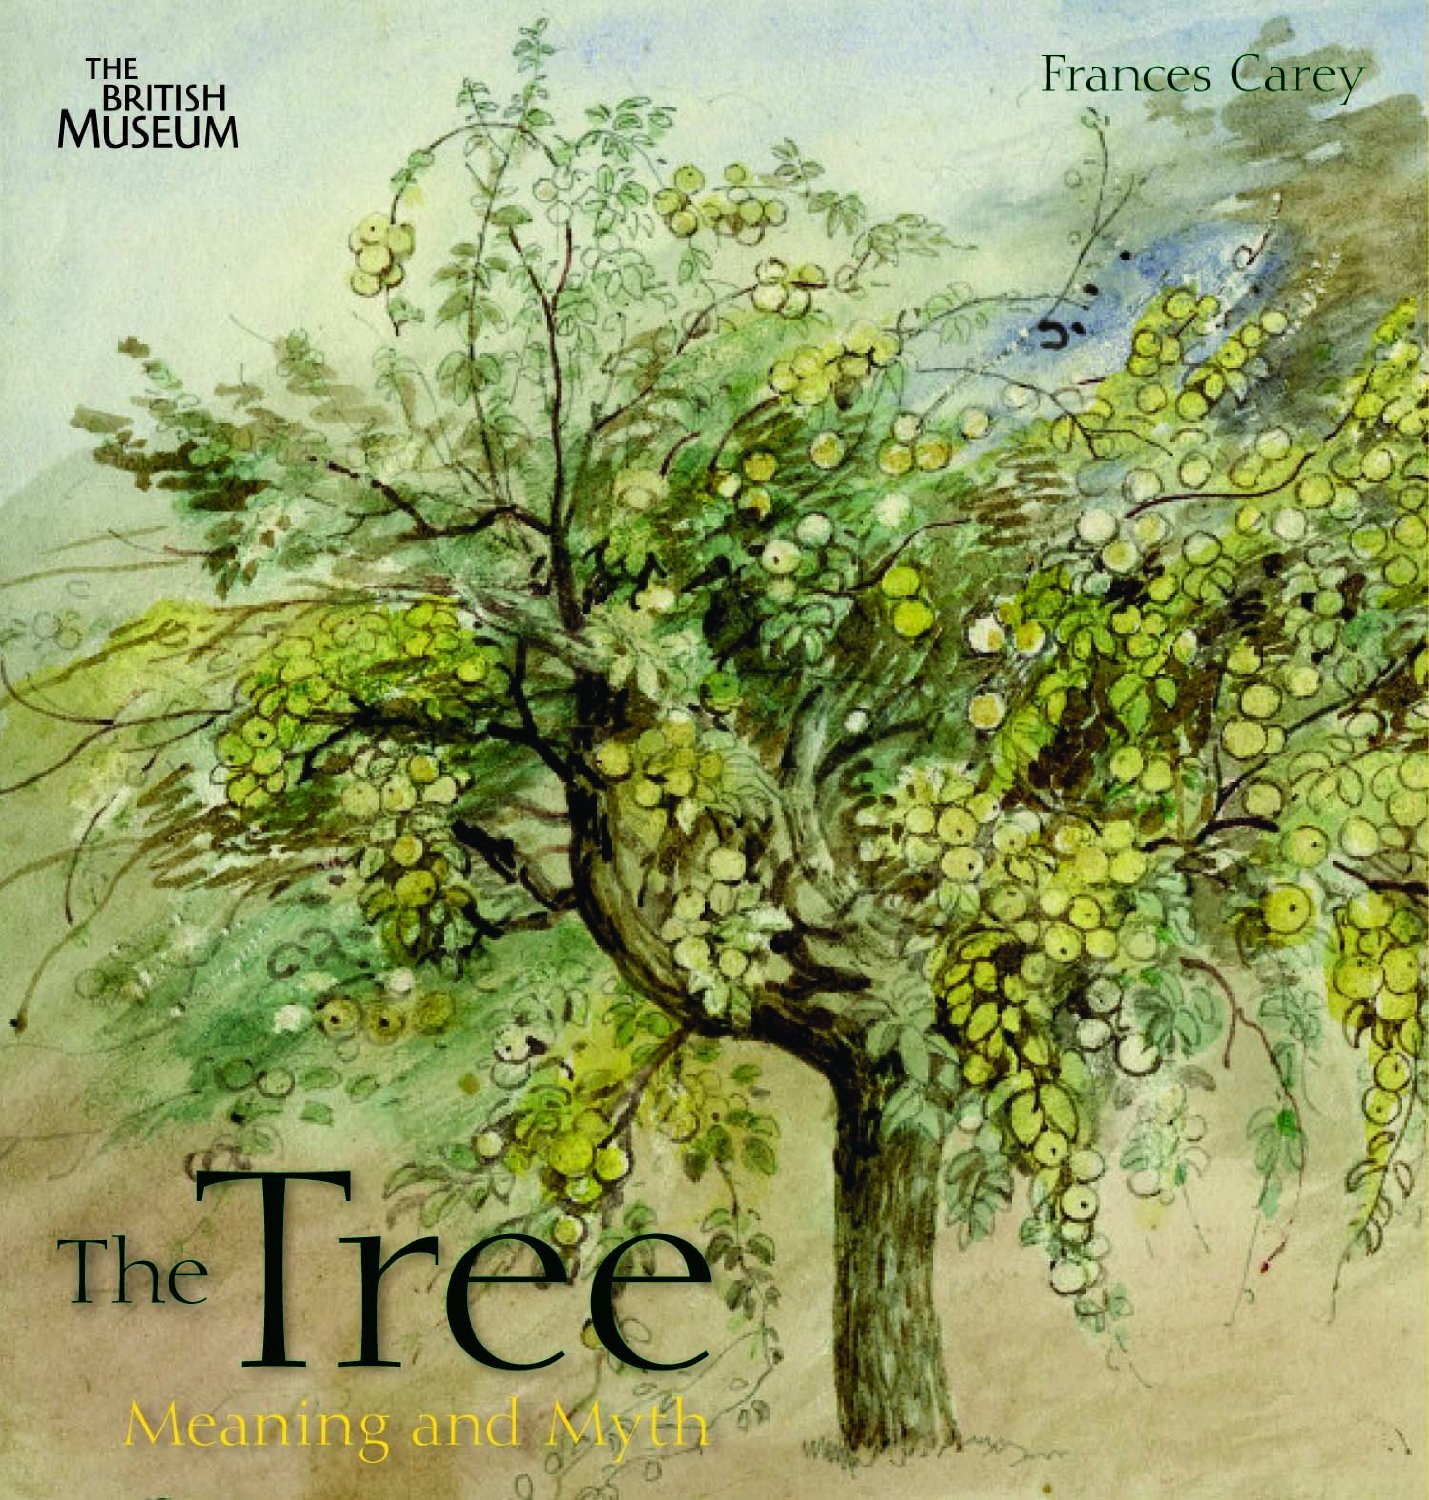 The Tree: Meaning and Myth - $38.000